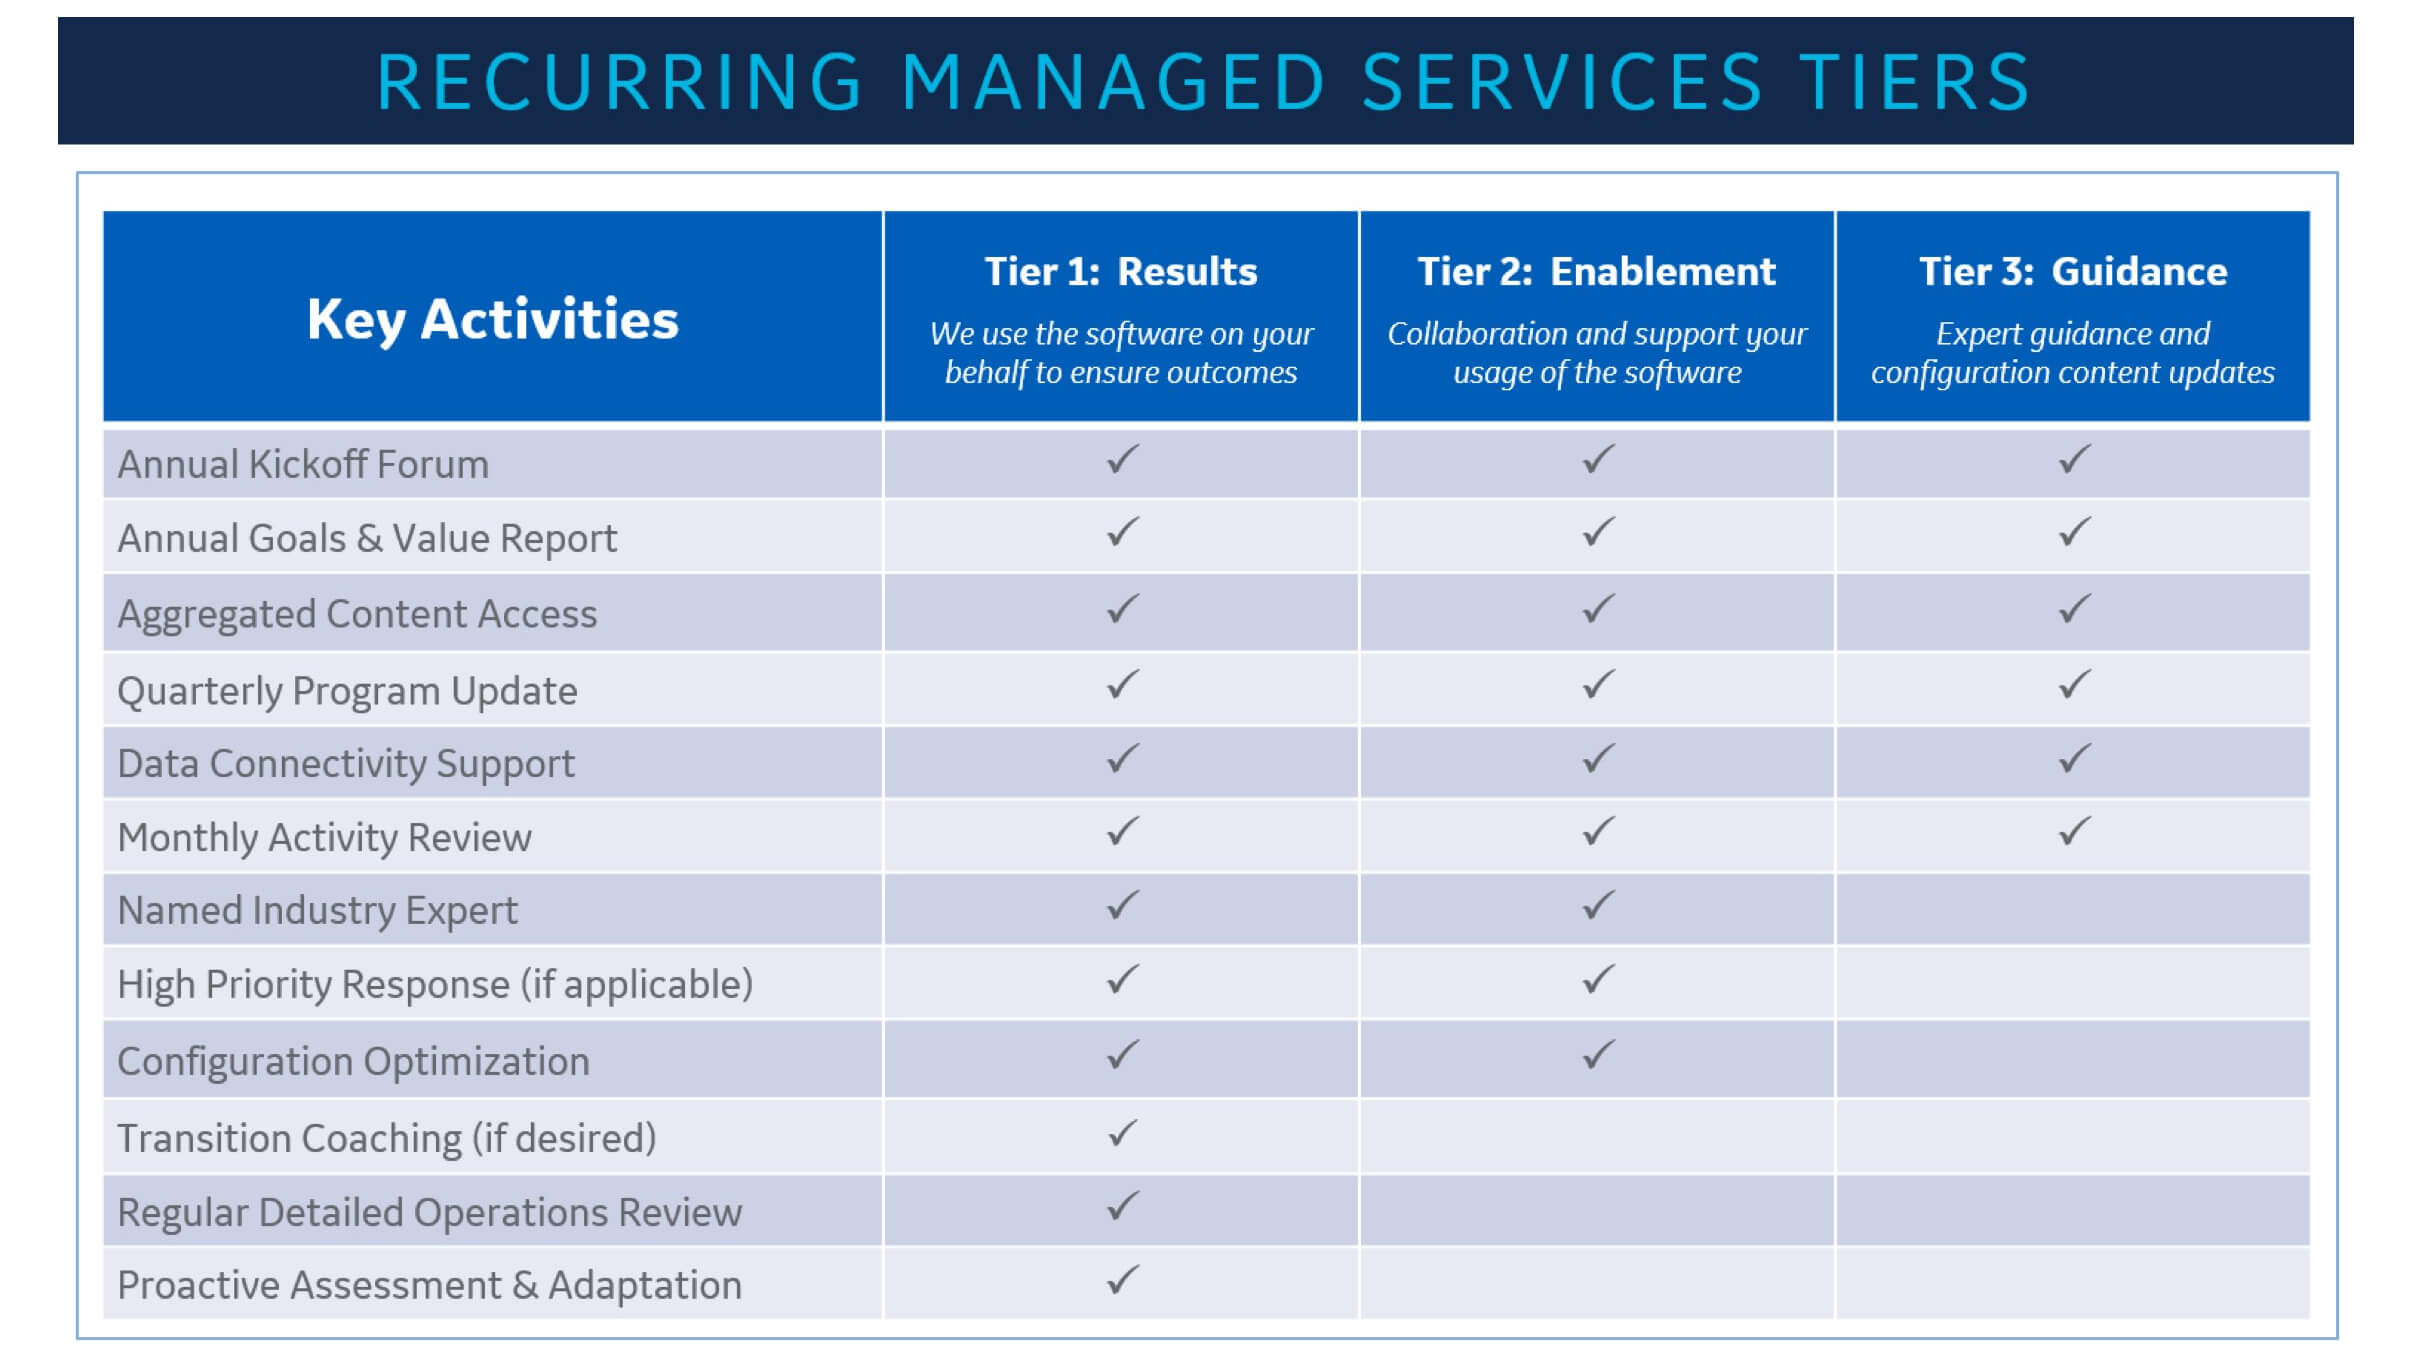 Recurring_Managed_Sercives_Tiers_Graphic_20210608